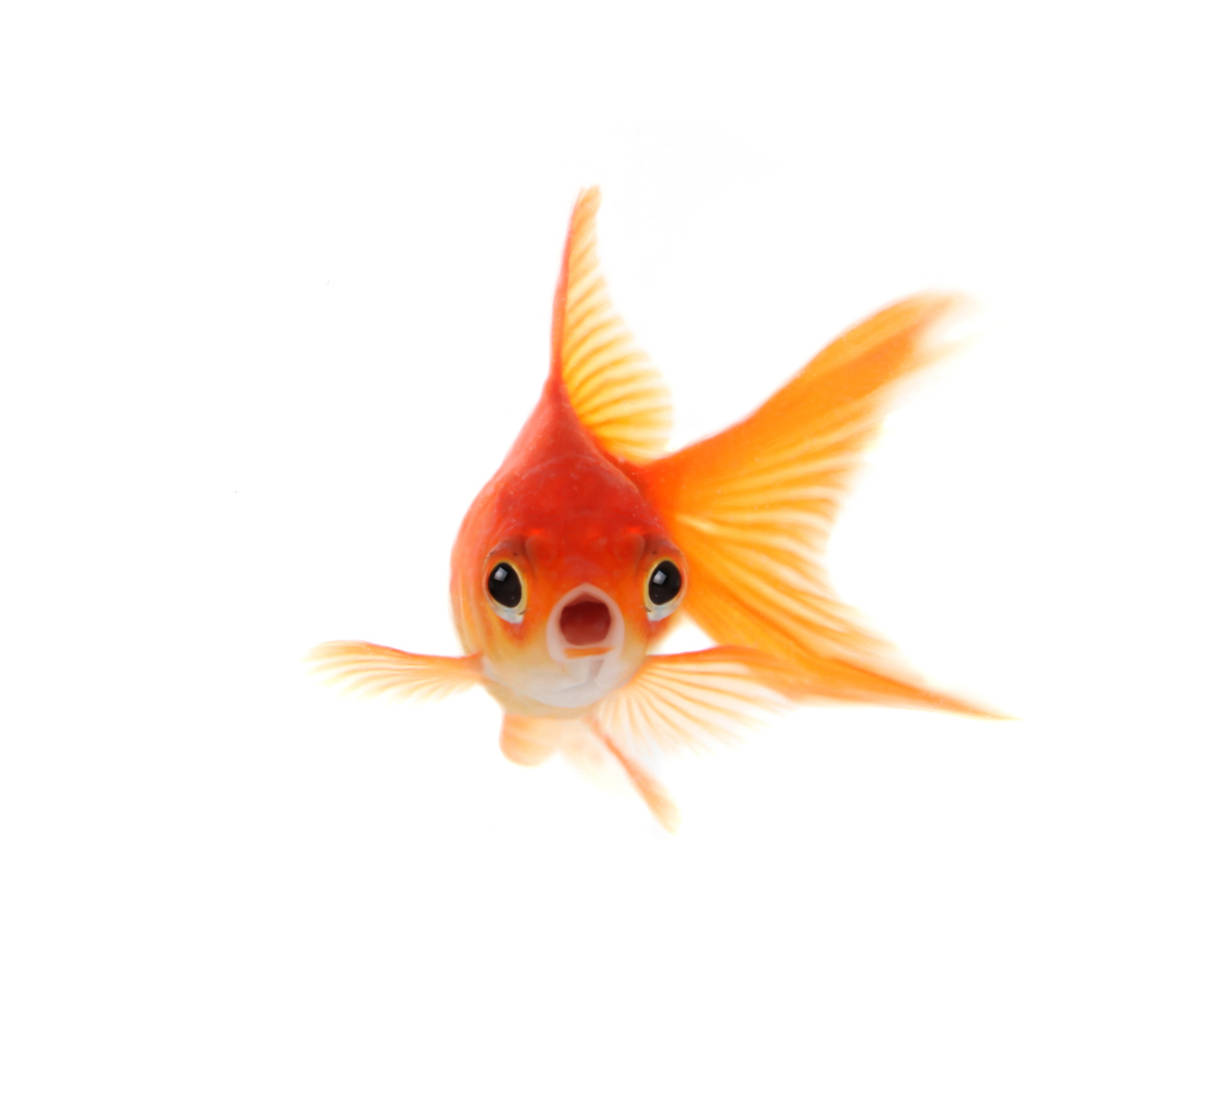 Wobbly Week 31 – Like a goldfish